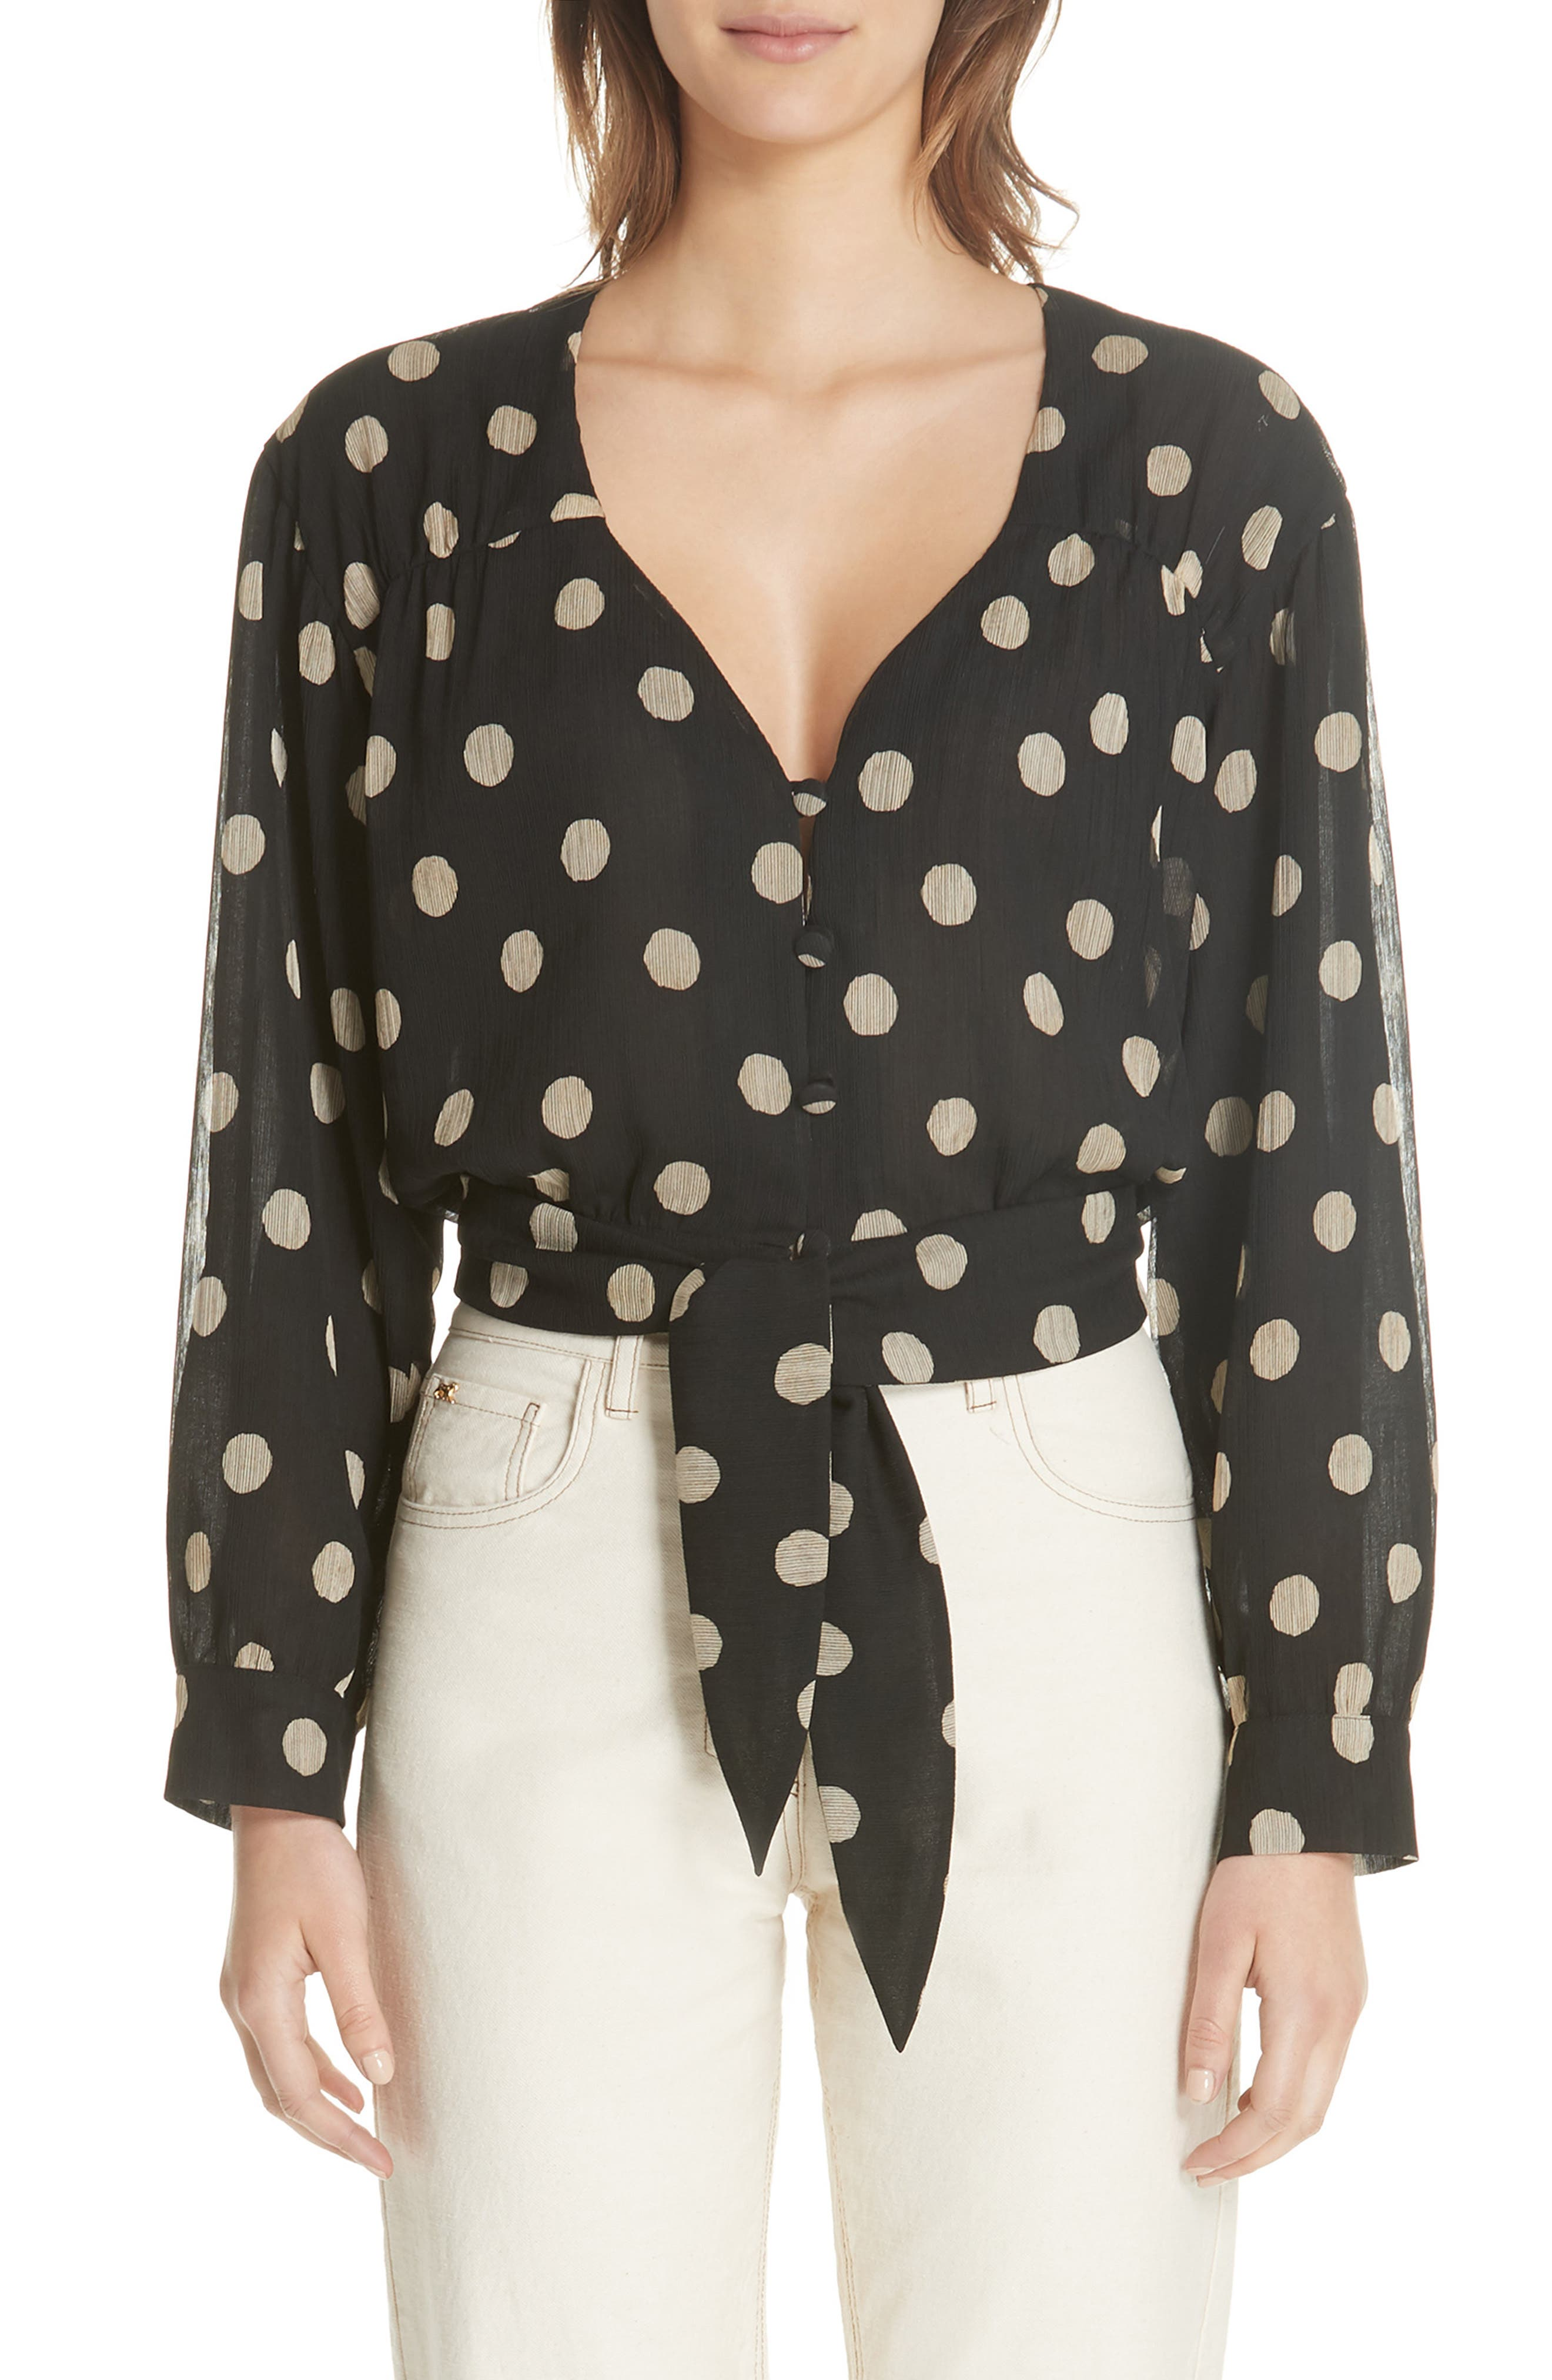 NANUSHKA Amulet Polka Dot Tech Chiffon Blouse, Main, color, 001